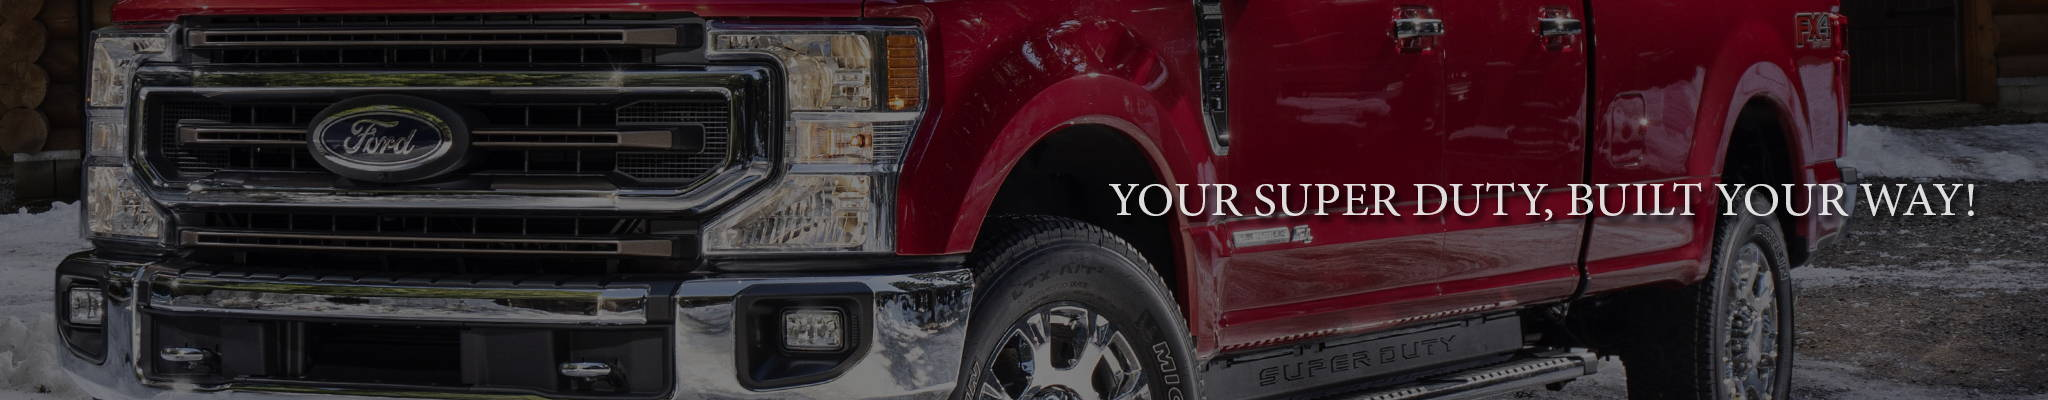 3C Truck Conversions Your Ford F250 F350 Super Duty Truck Built Your Way! Customize your Build Here.